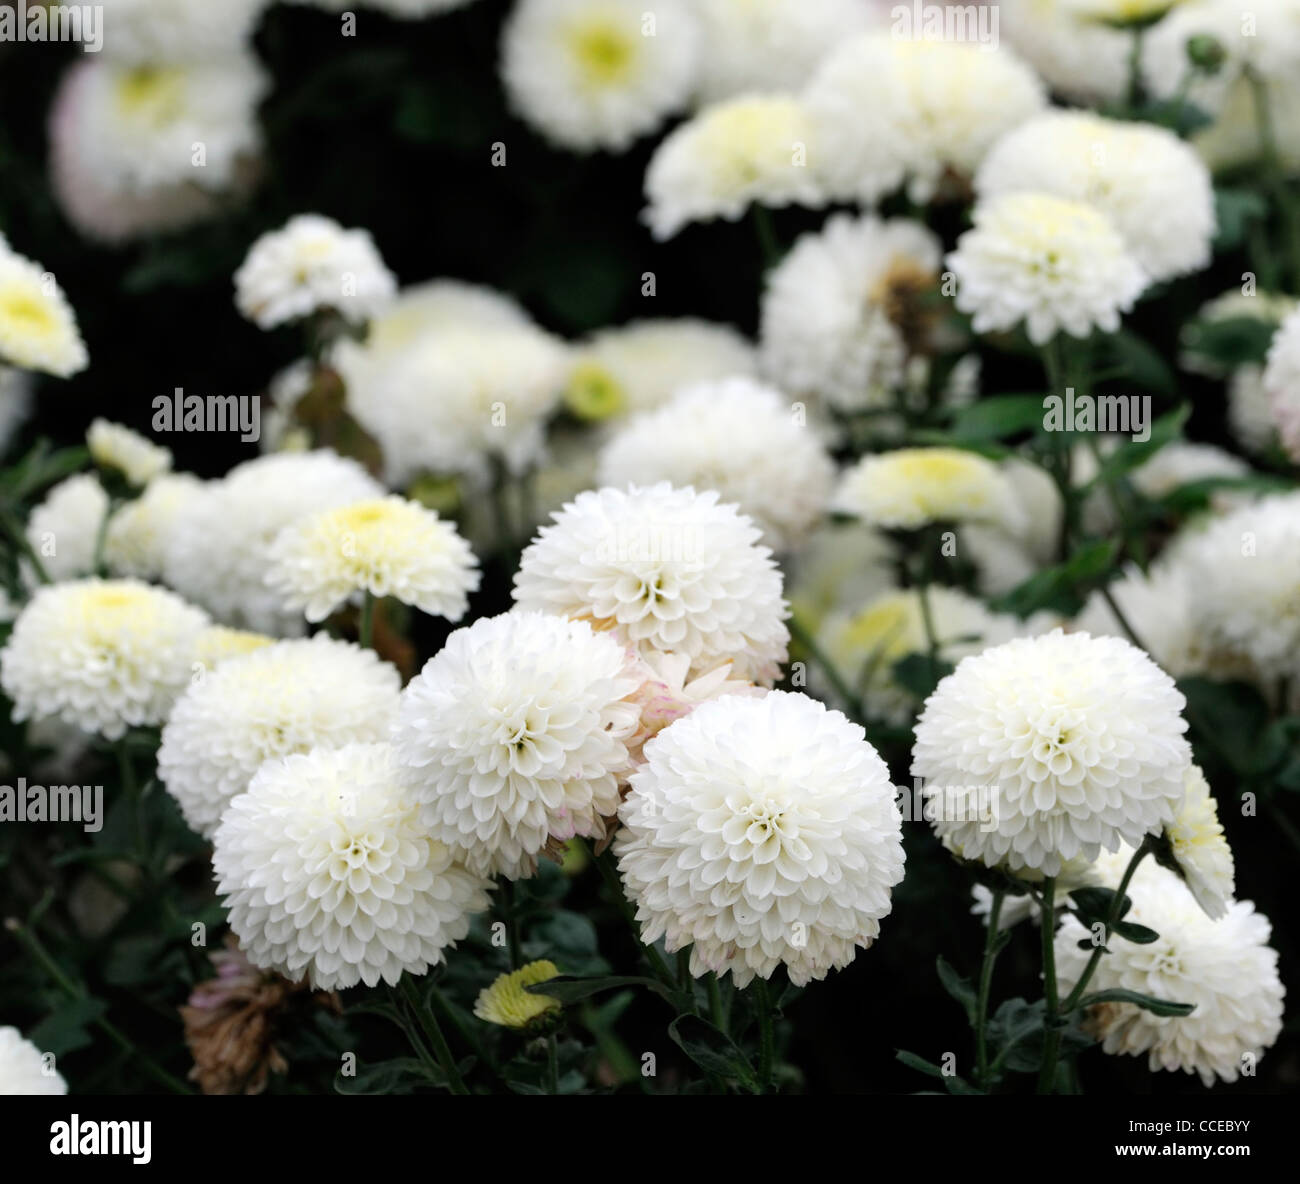 Cameo Stock Photos Images Page 2 Alamy Vintage Story Flower Japanese Chrysantemum Chrysanthemum White Flowers Blooms Blossoms Half Hardy Perennial Herbaceous Plant Bloom Blossom